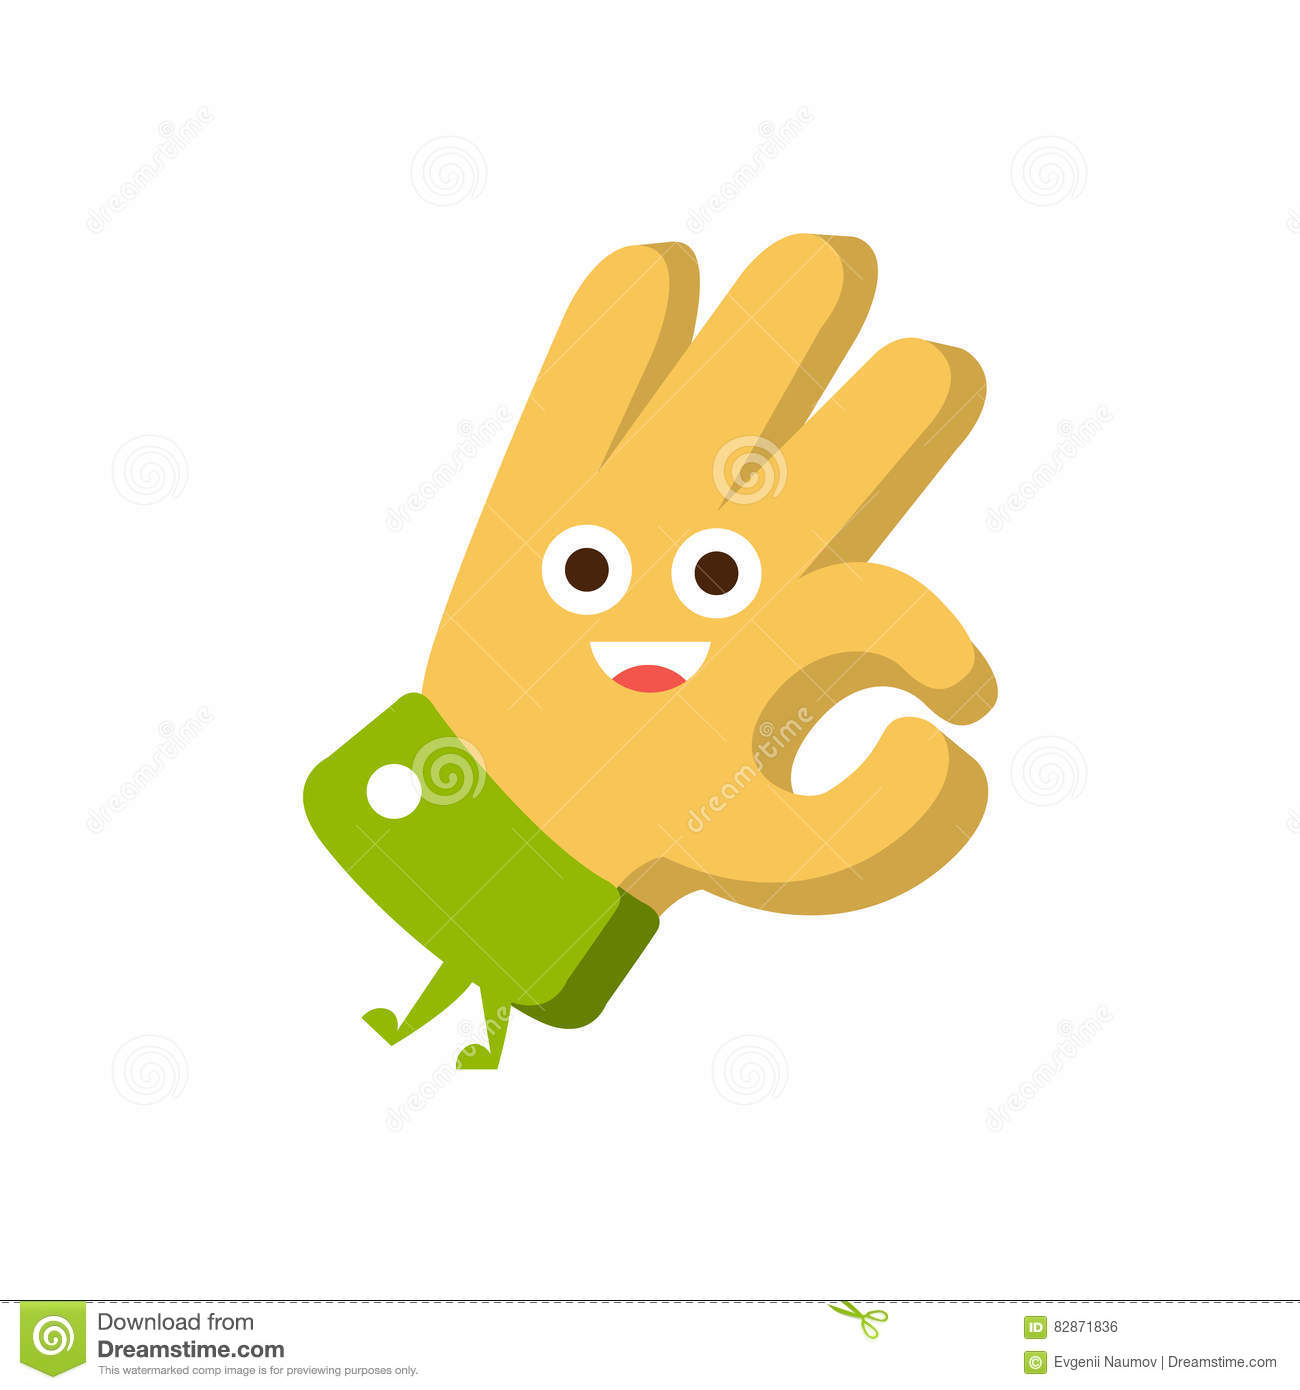 Ok Gesture Word And Corresponding Illustration Cartoon Character